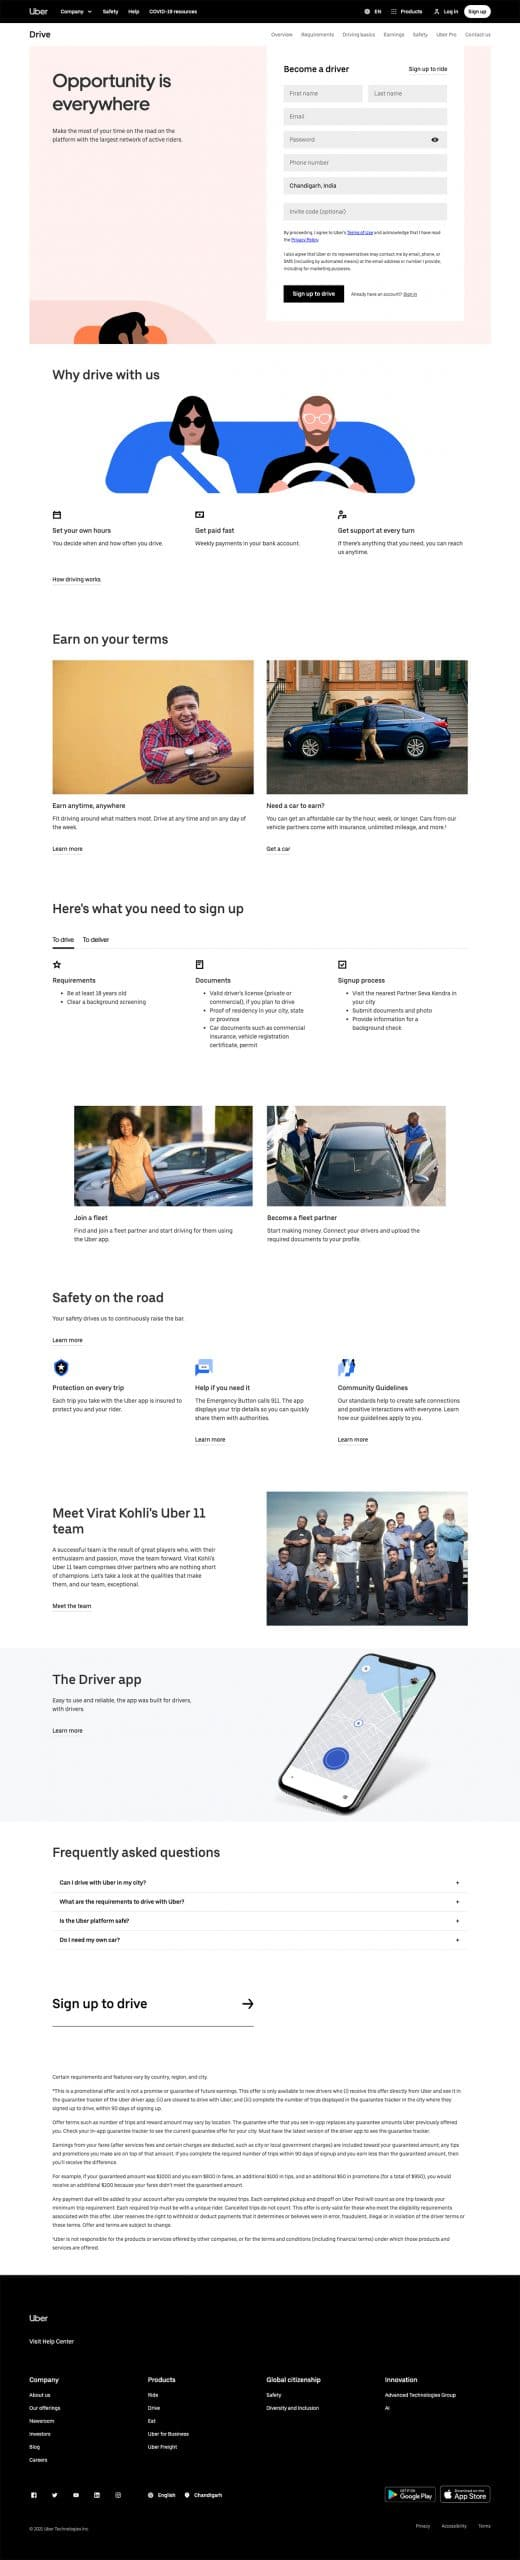 best landing page by Uber example